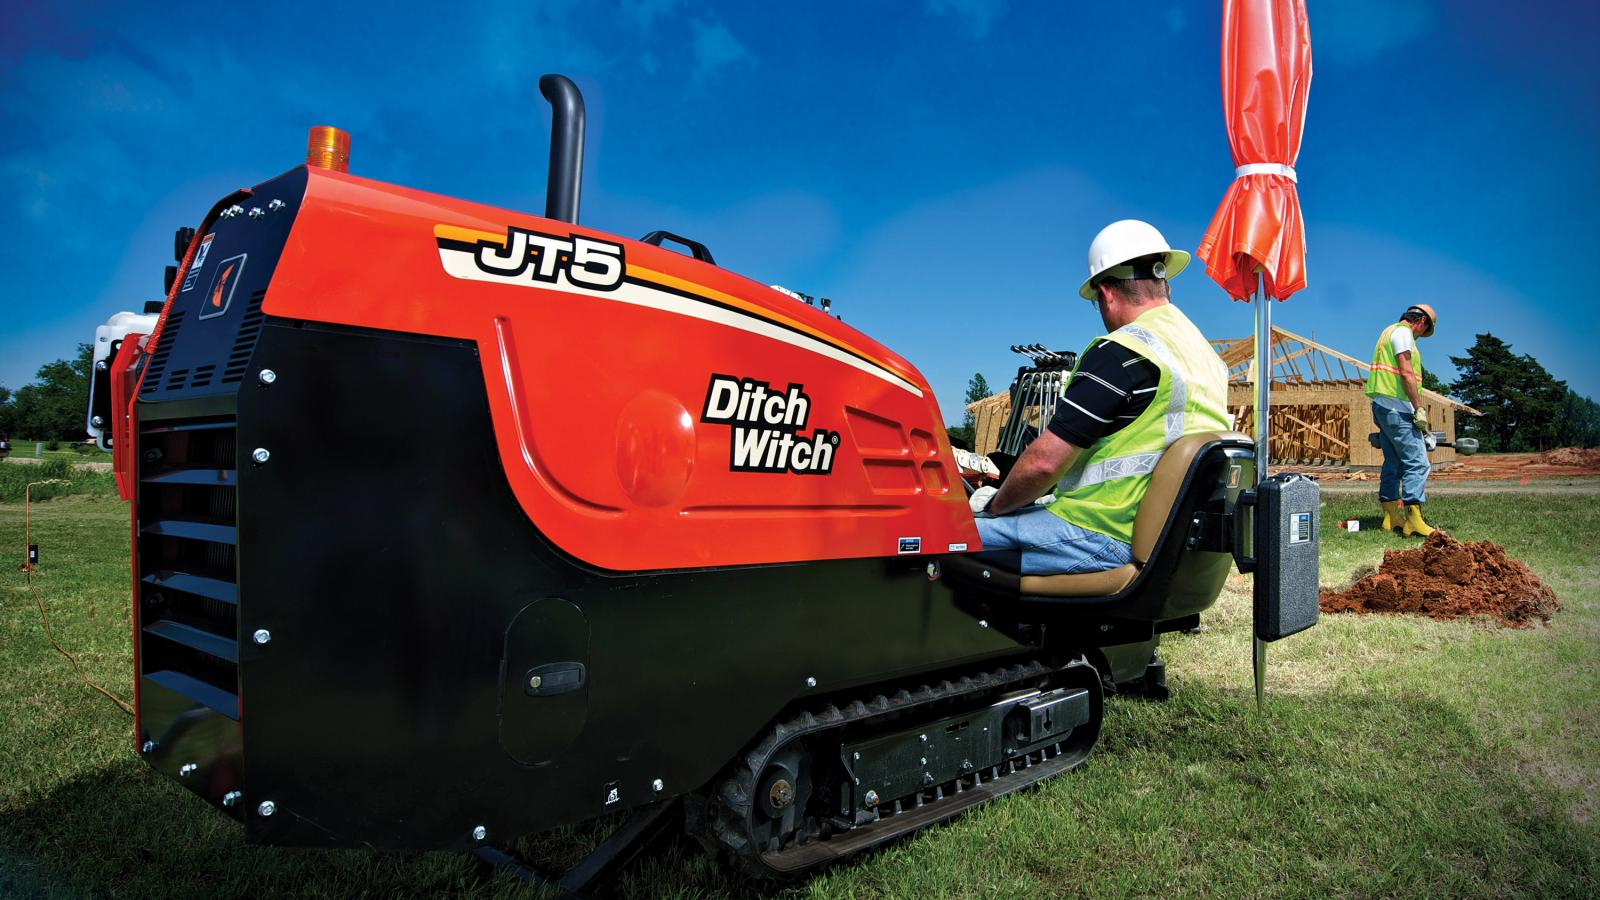 Ditch Witch JT5 Directional Drill